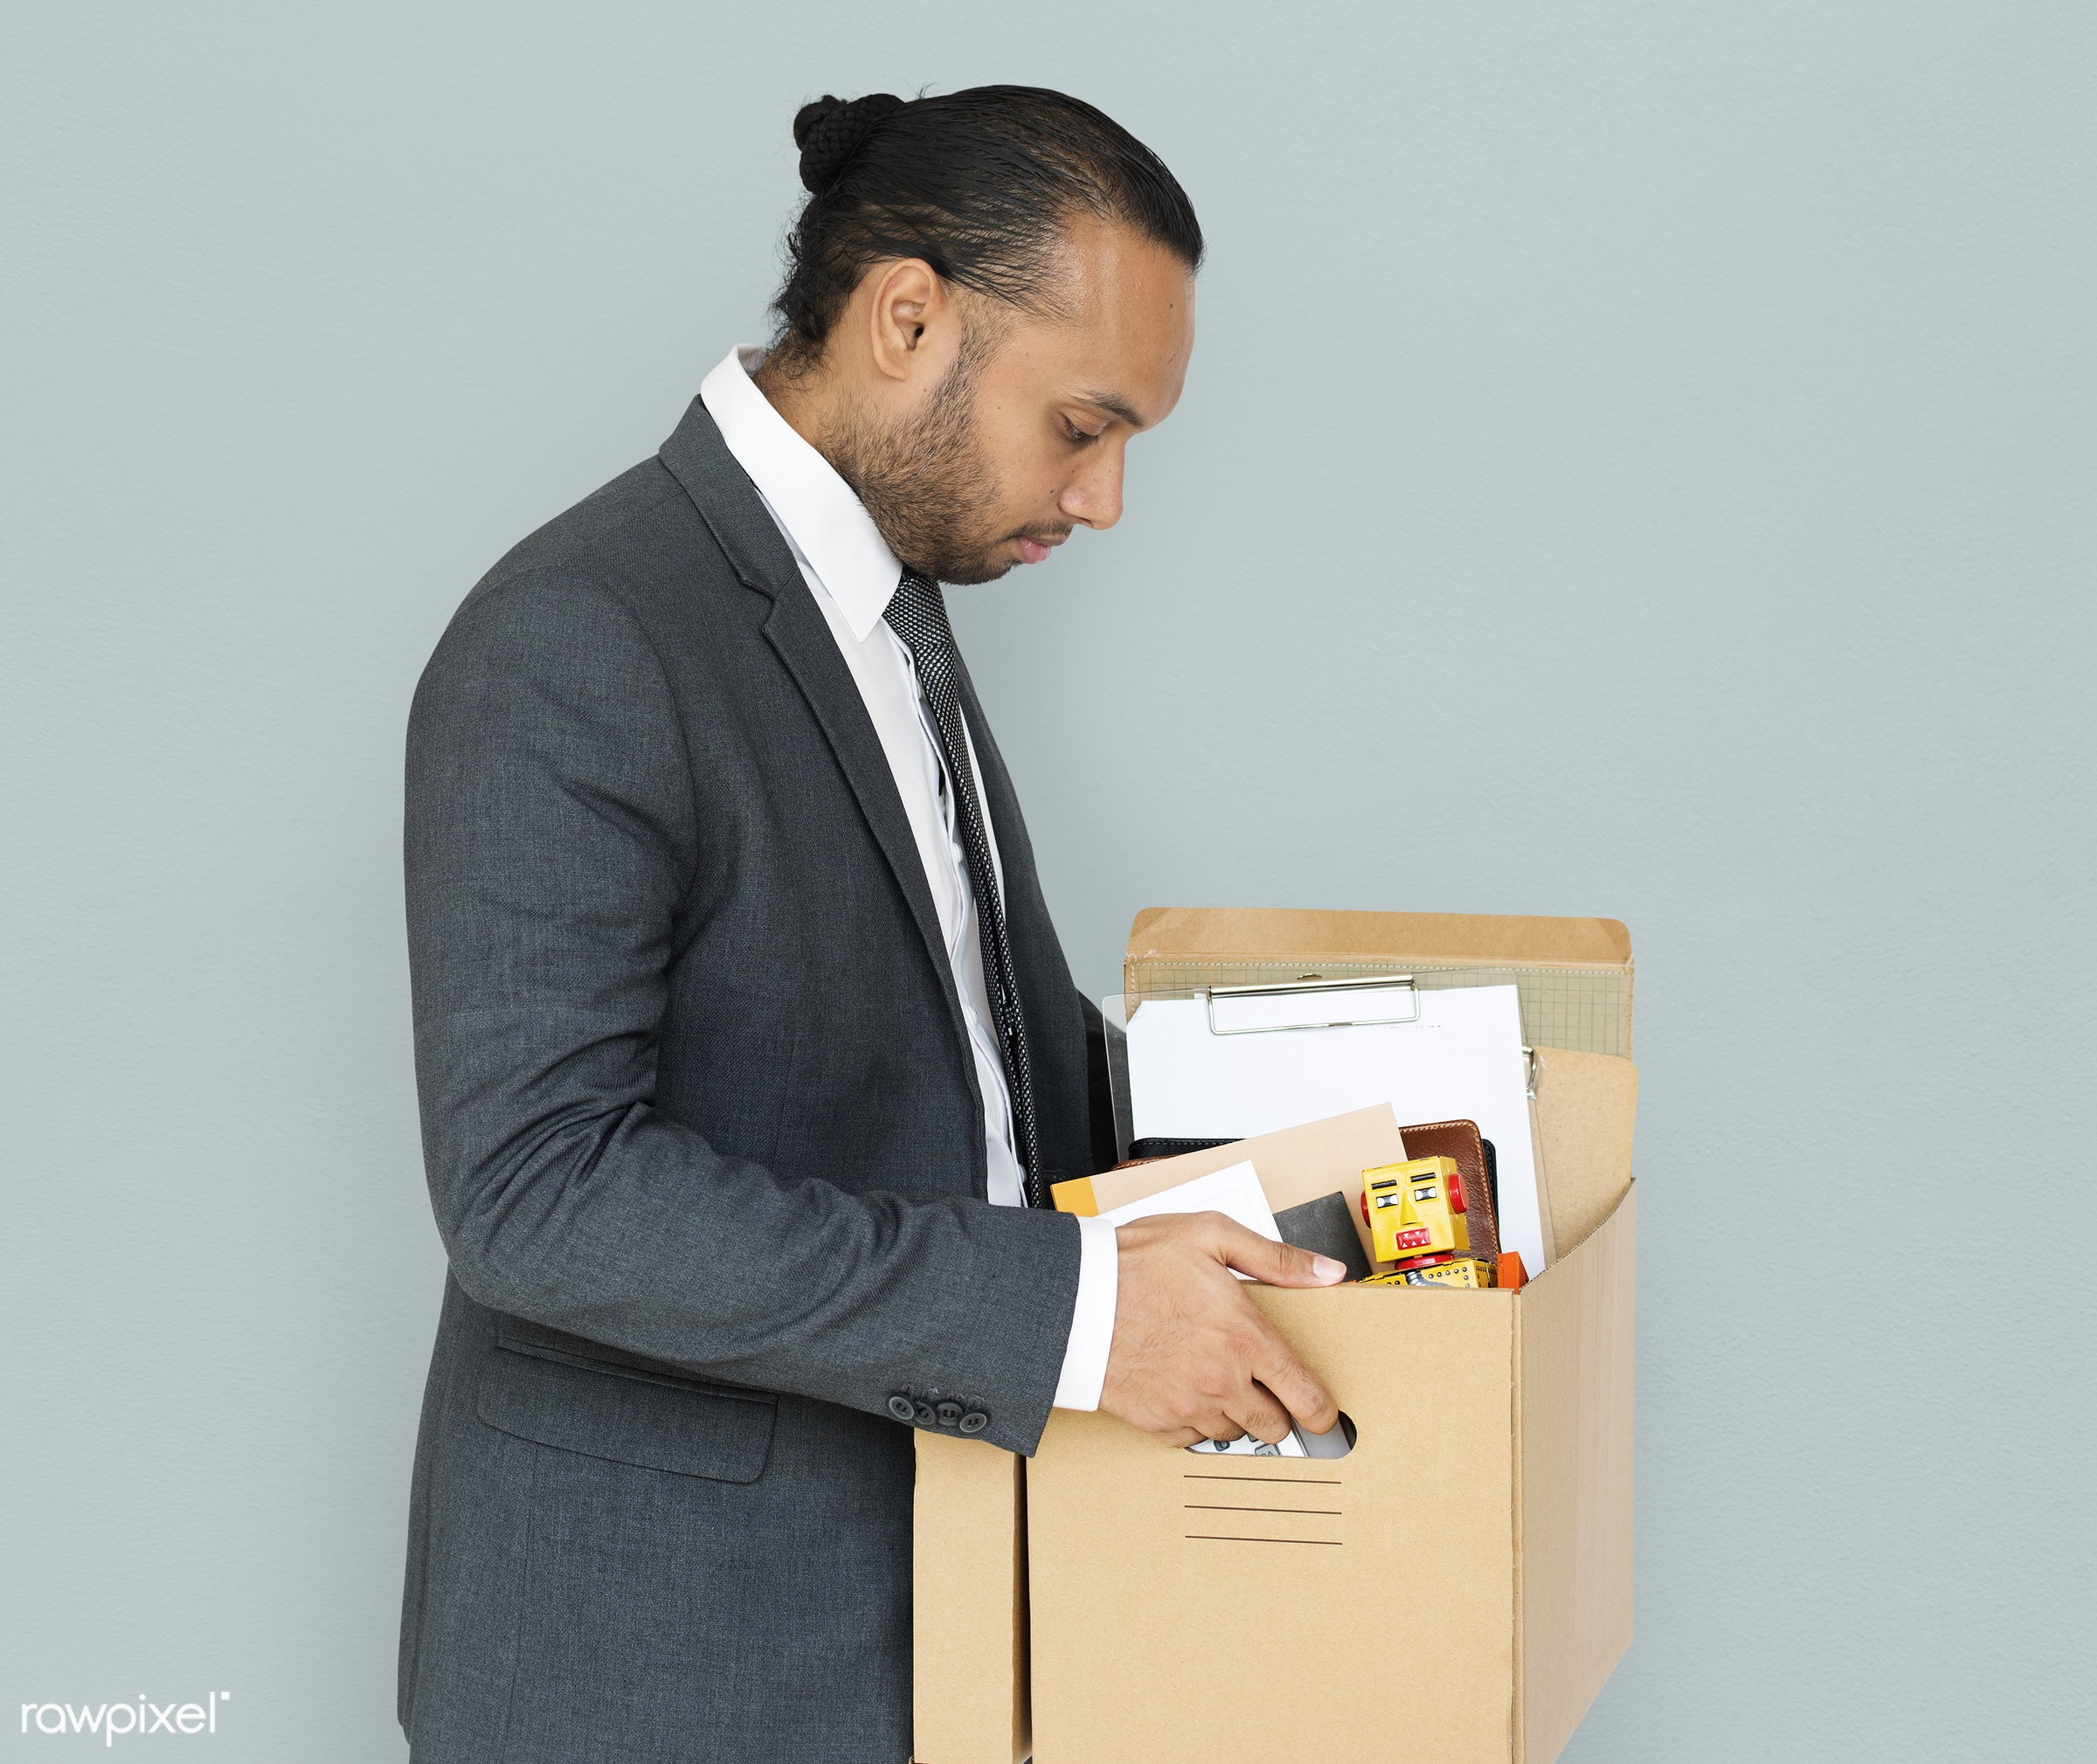 box, asian, background, business, business attire, business man, business wear, depressed, emotion, expression, fired,...